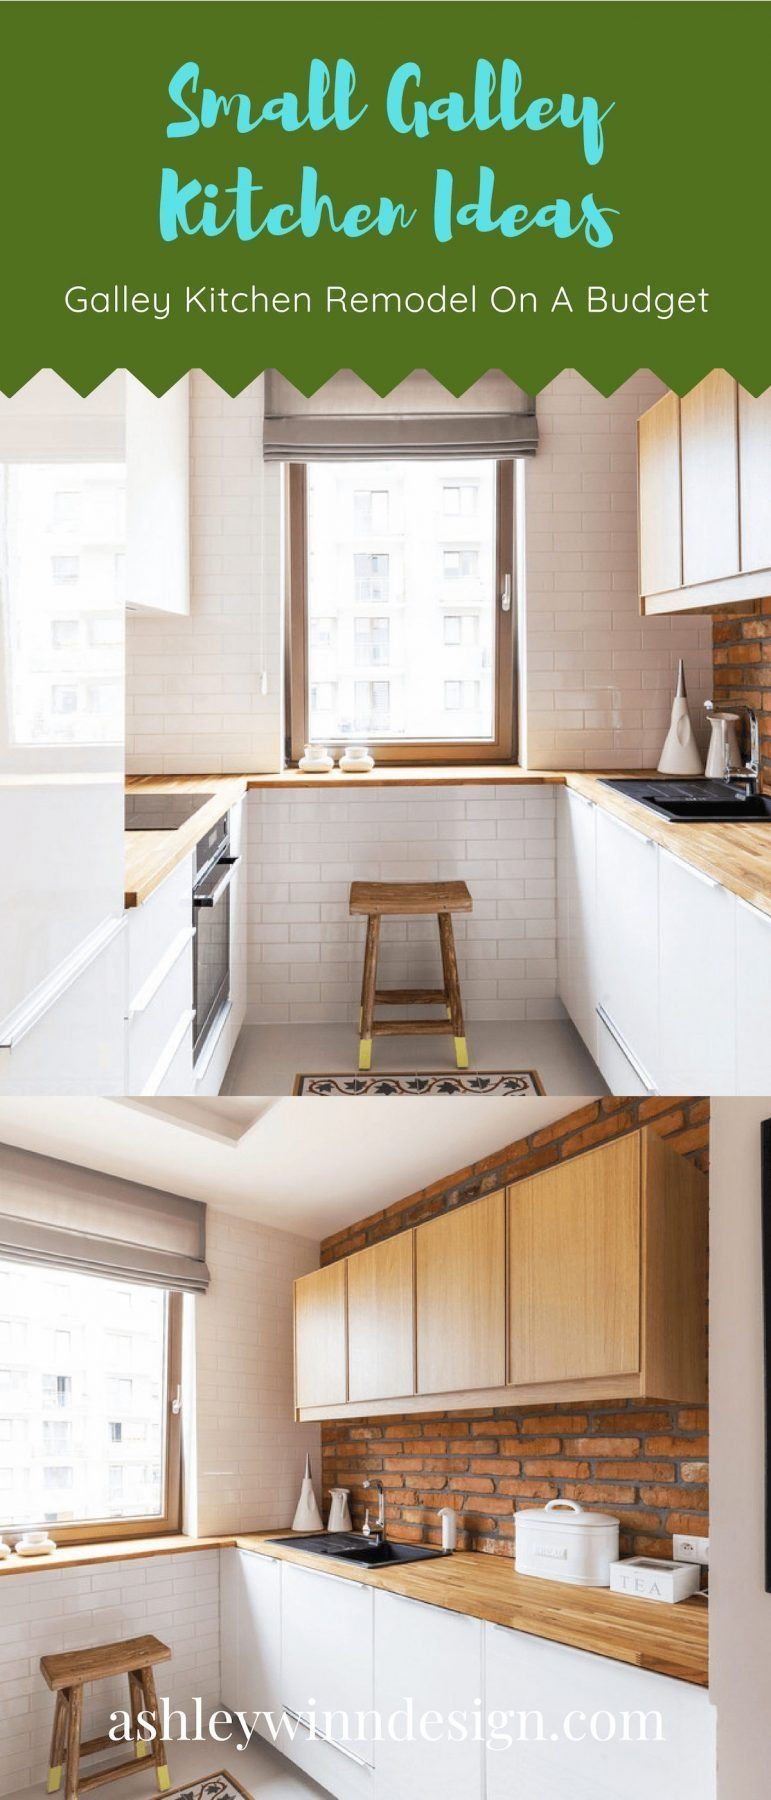 29 awesome galley kitchen remodel ideas design inspiration rh pinterest com